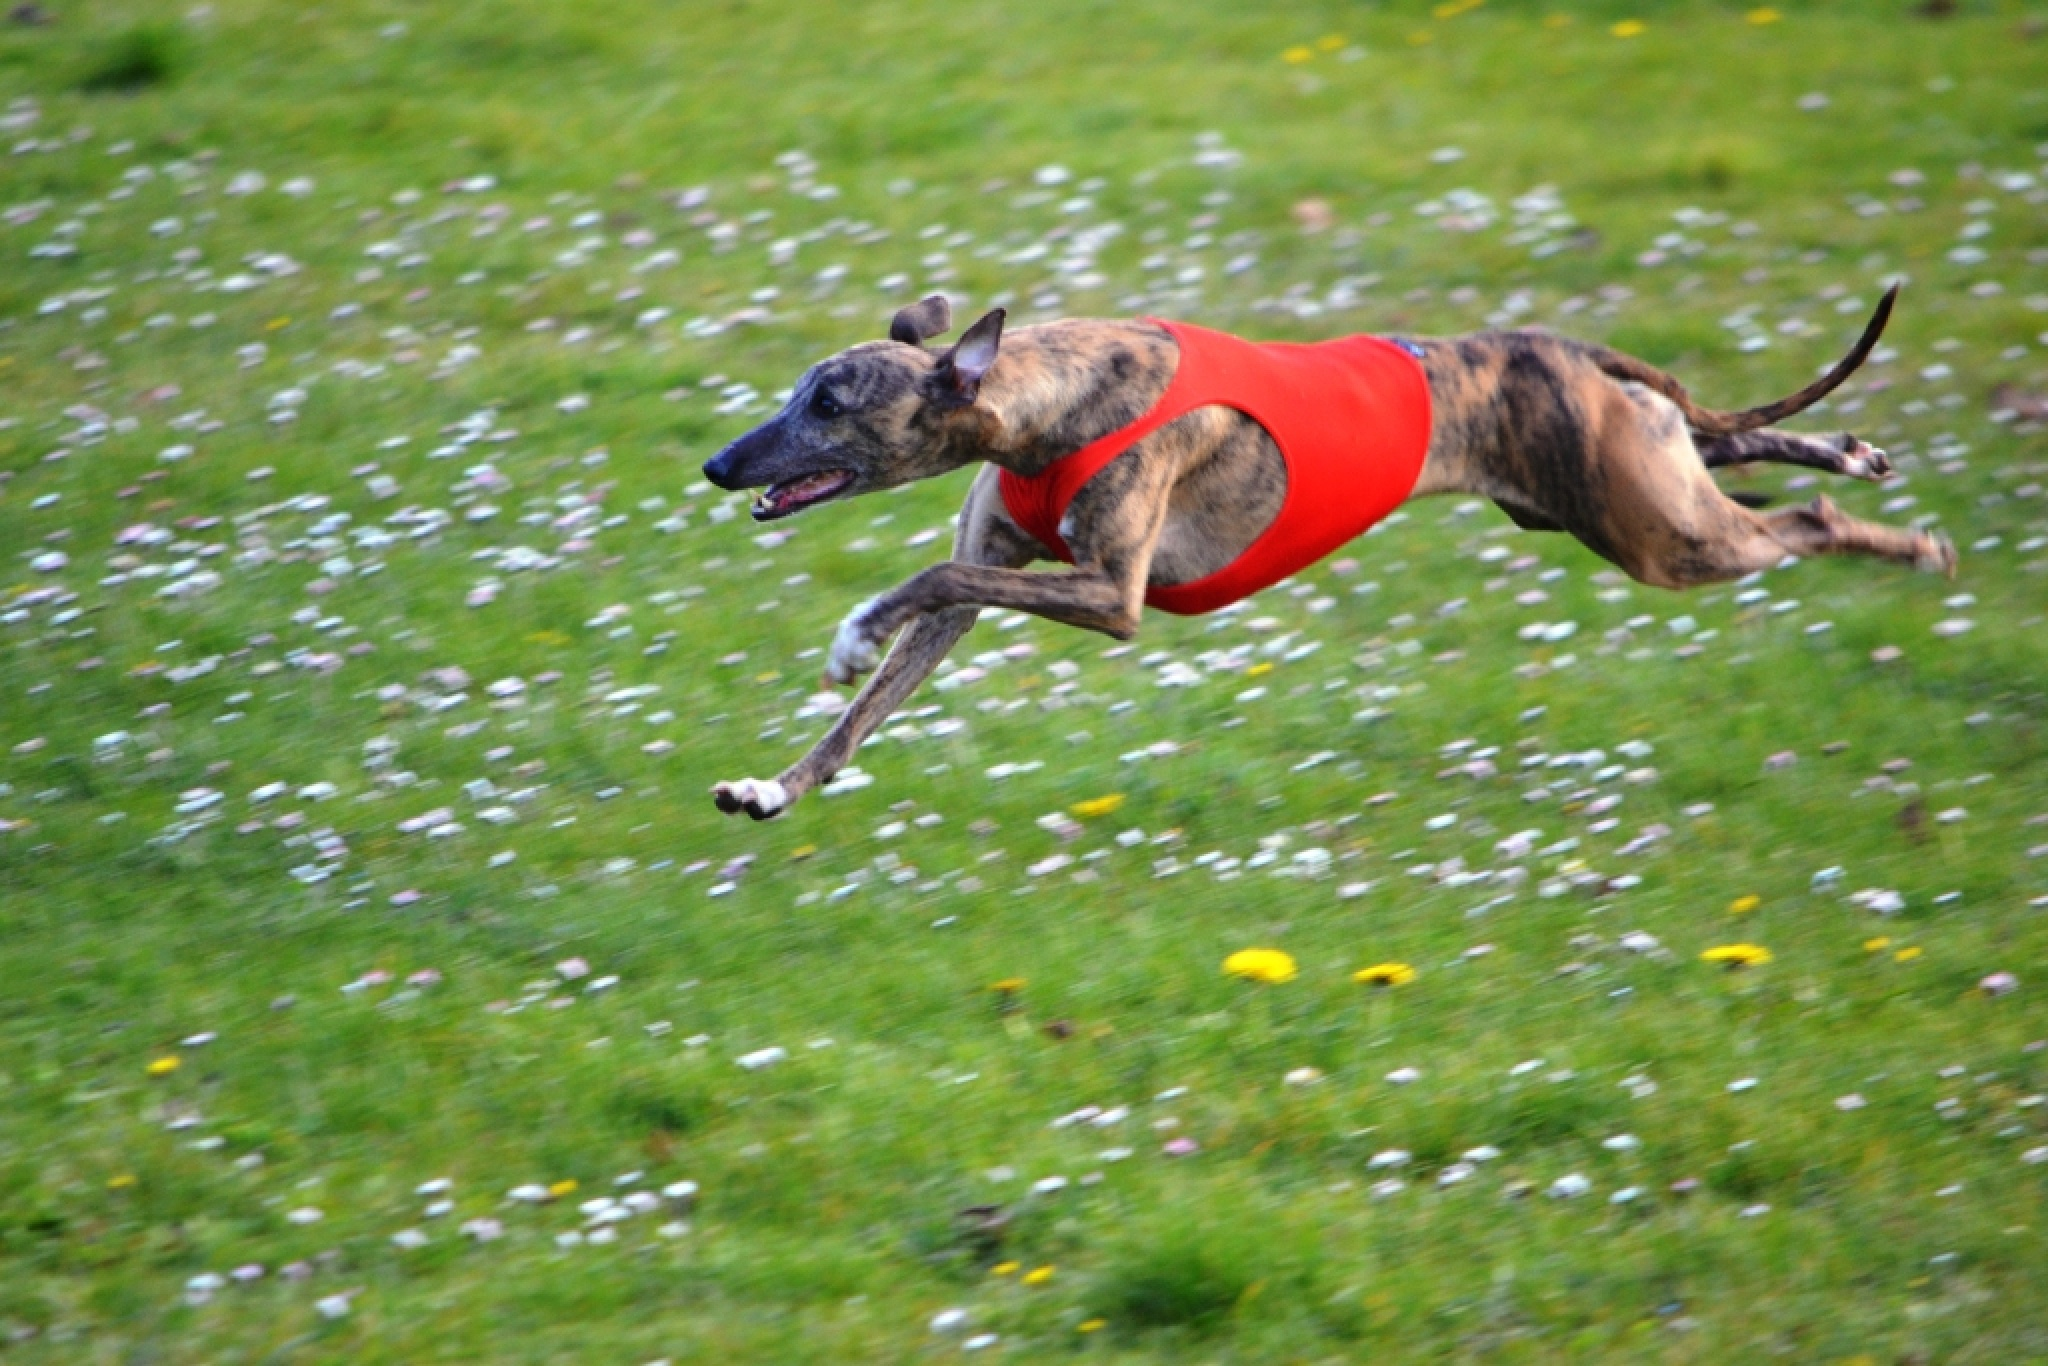 Racing Whippet by alison16